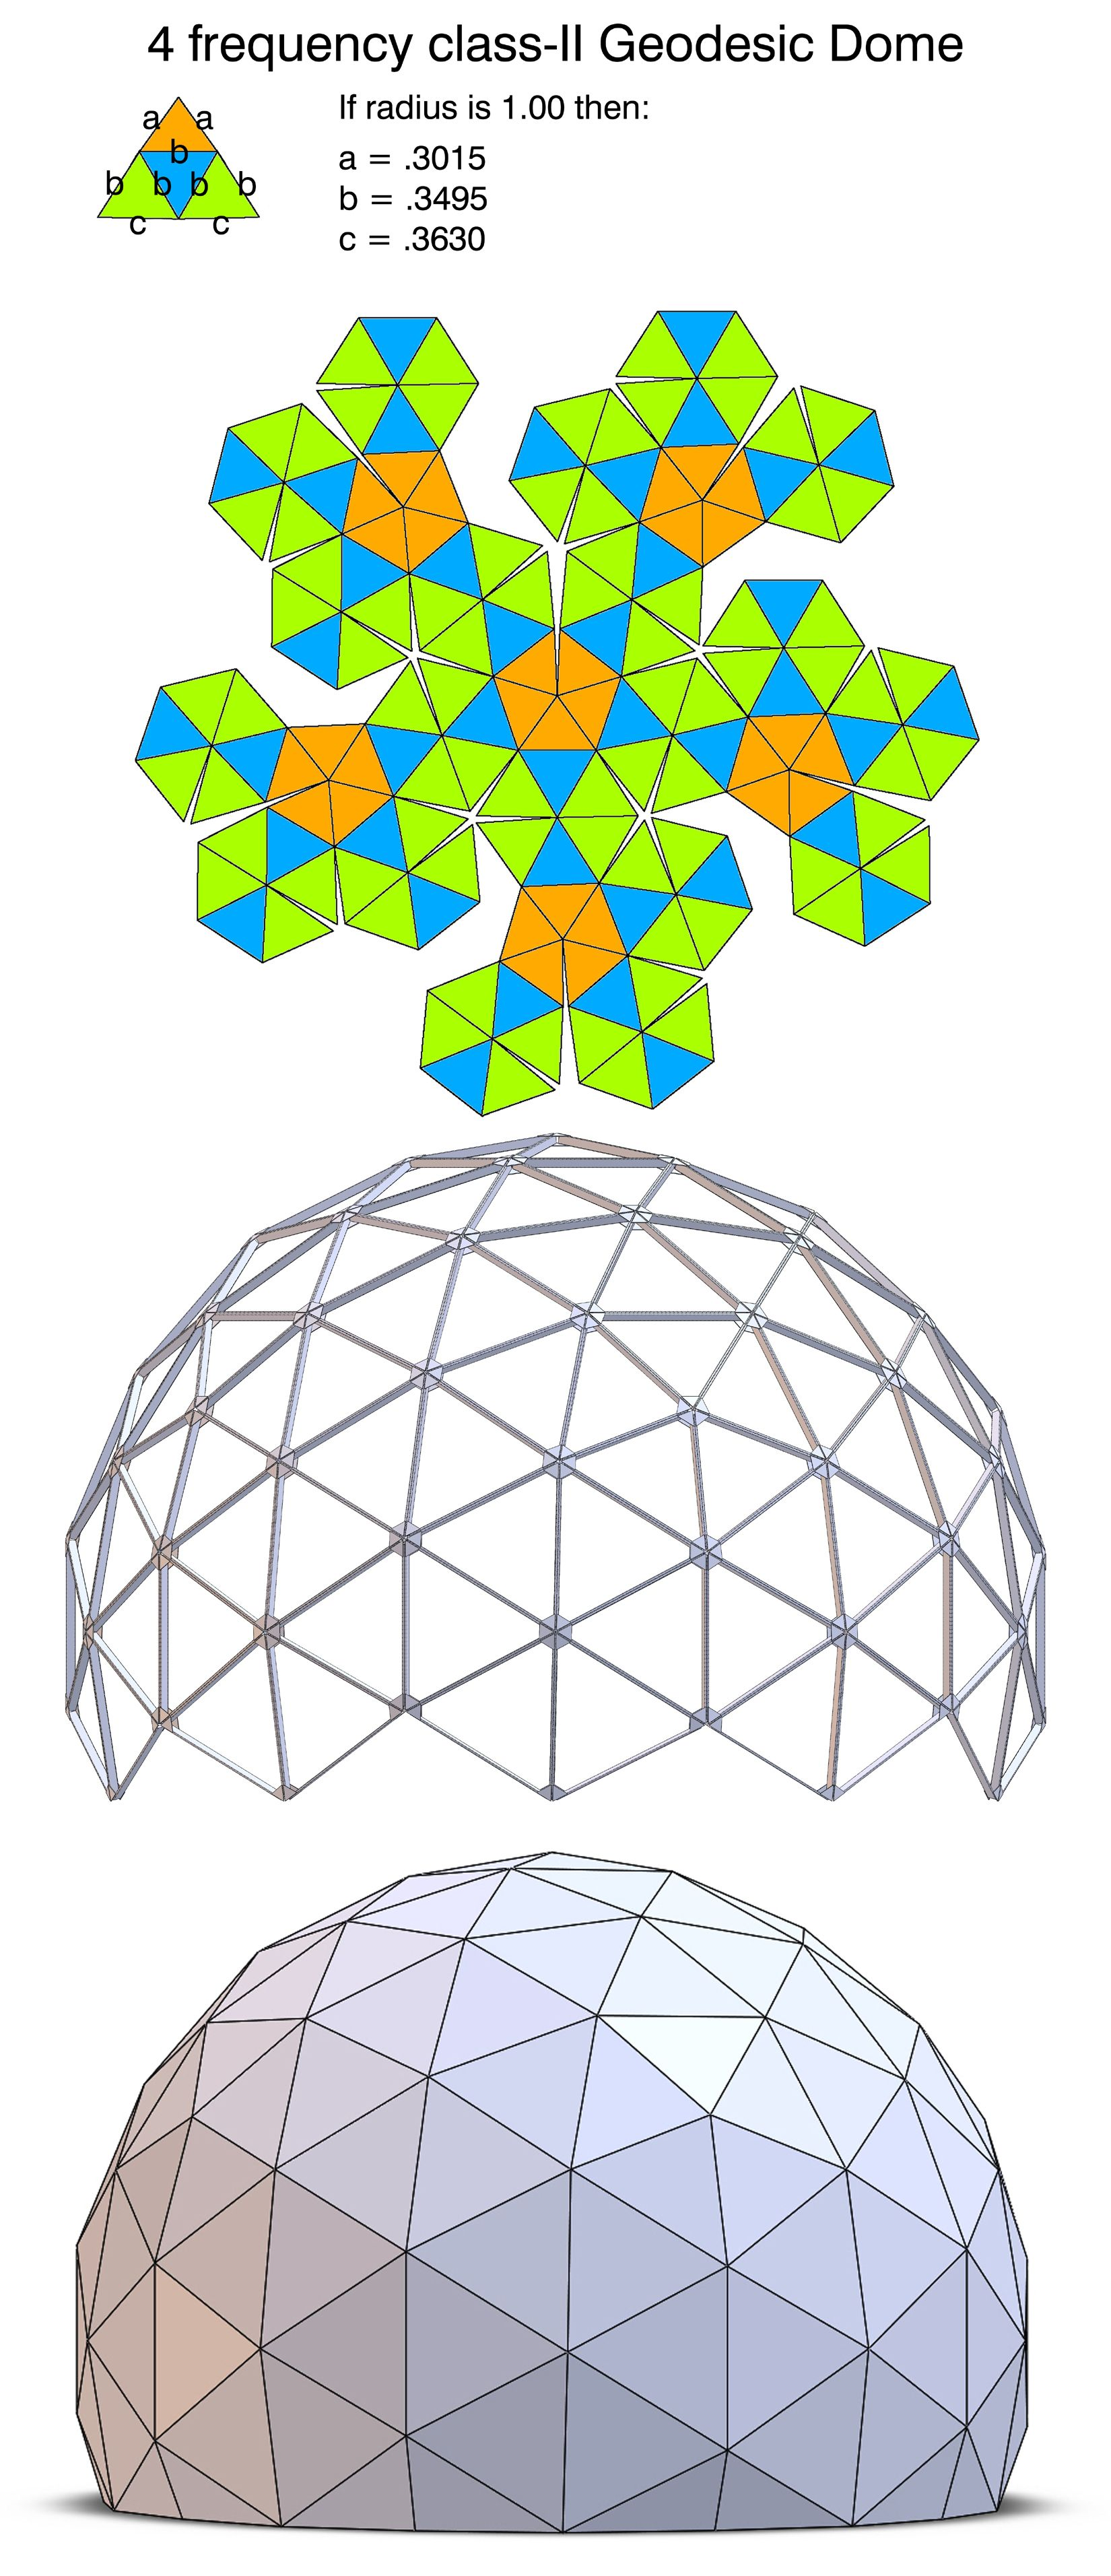 Pattern For A 4 Frequency Class-II Geodesic Dome. Only 3